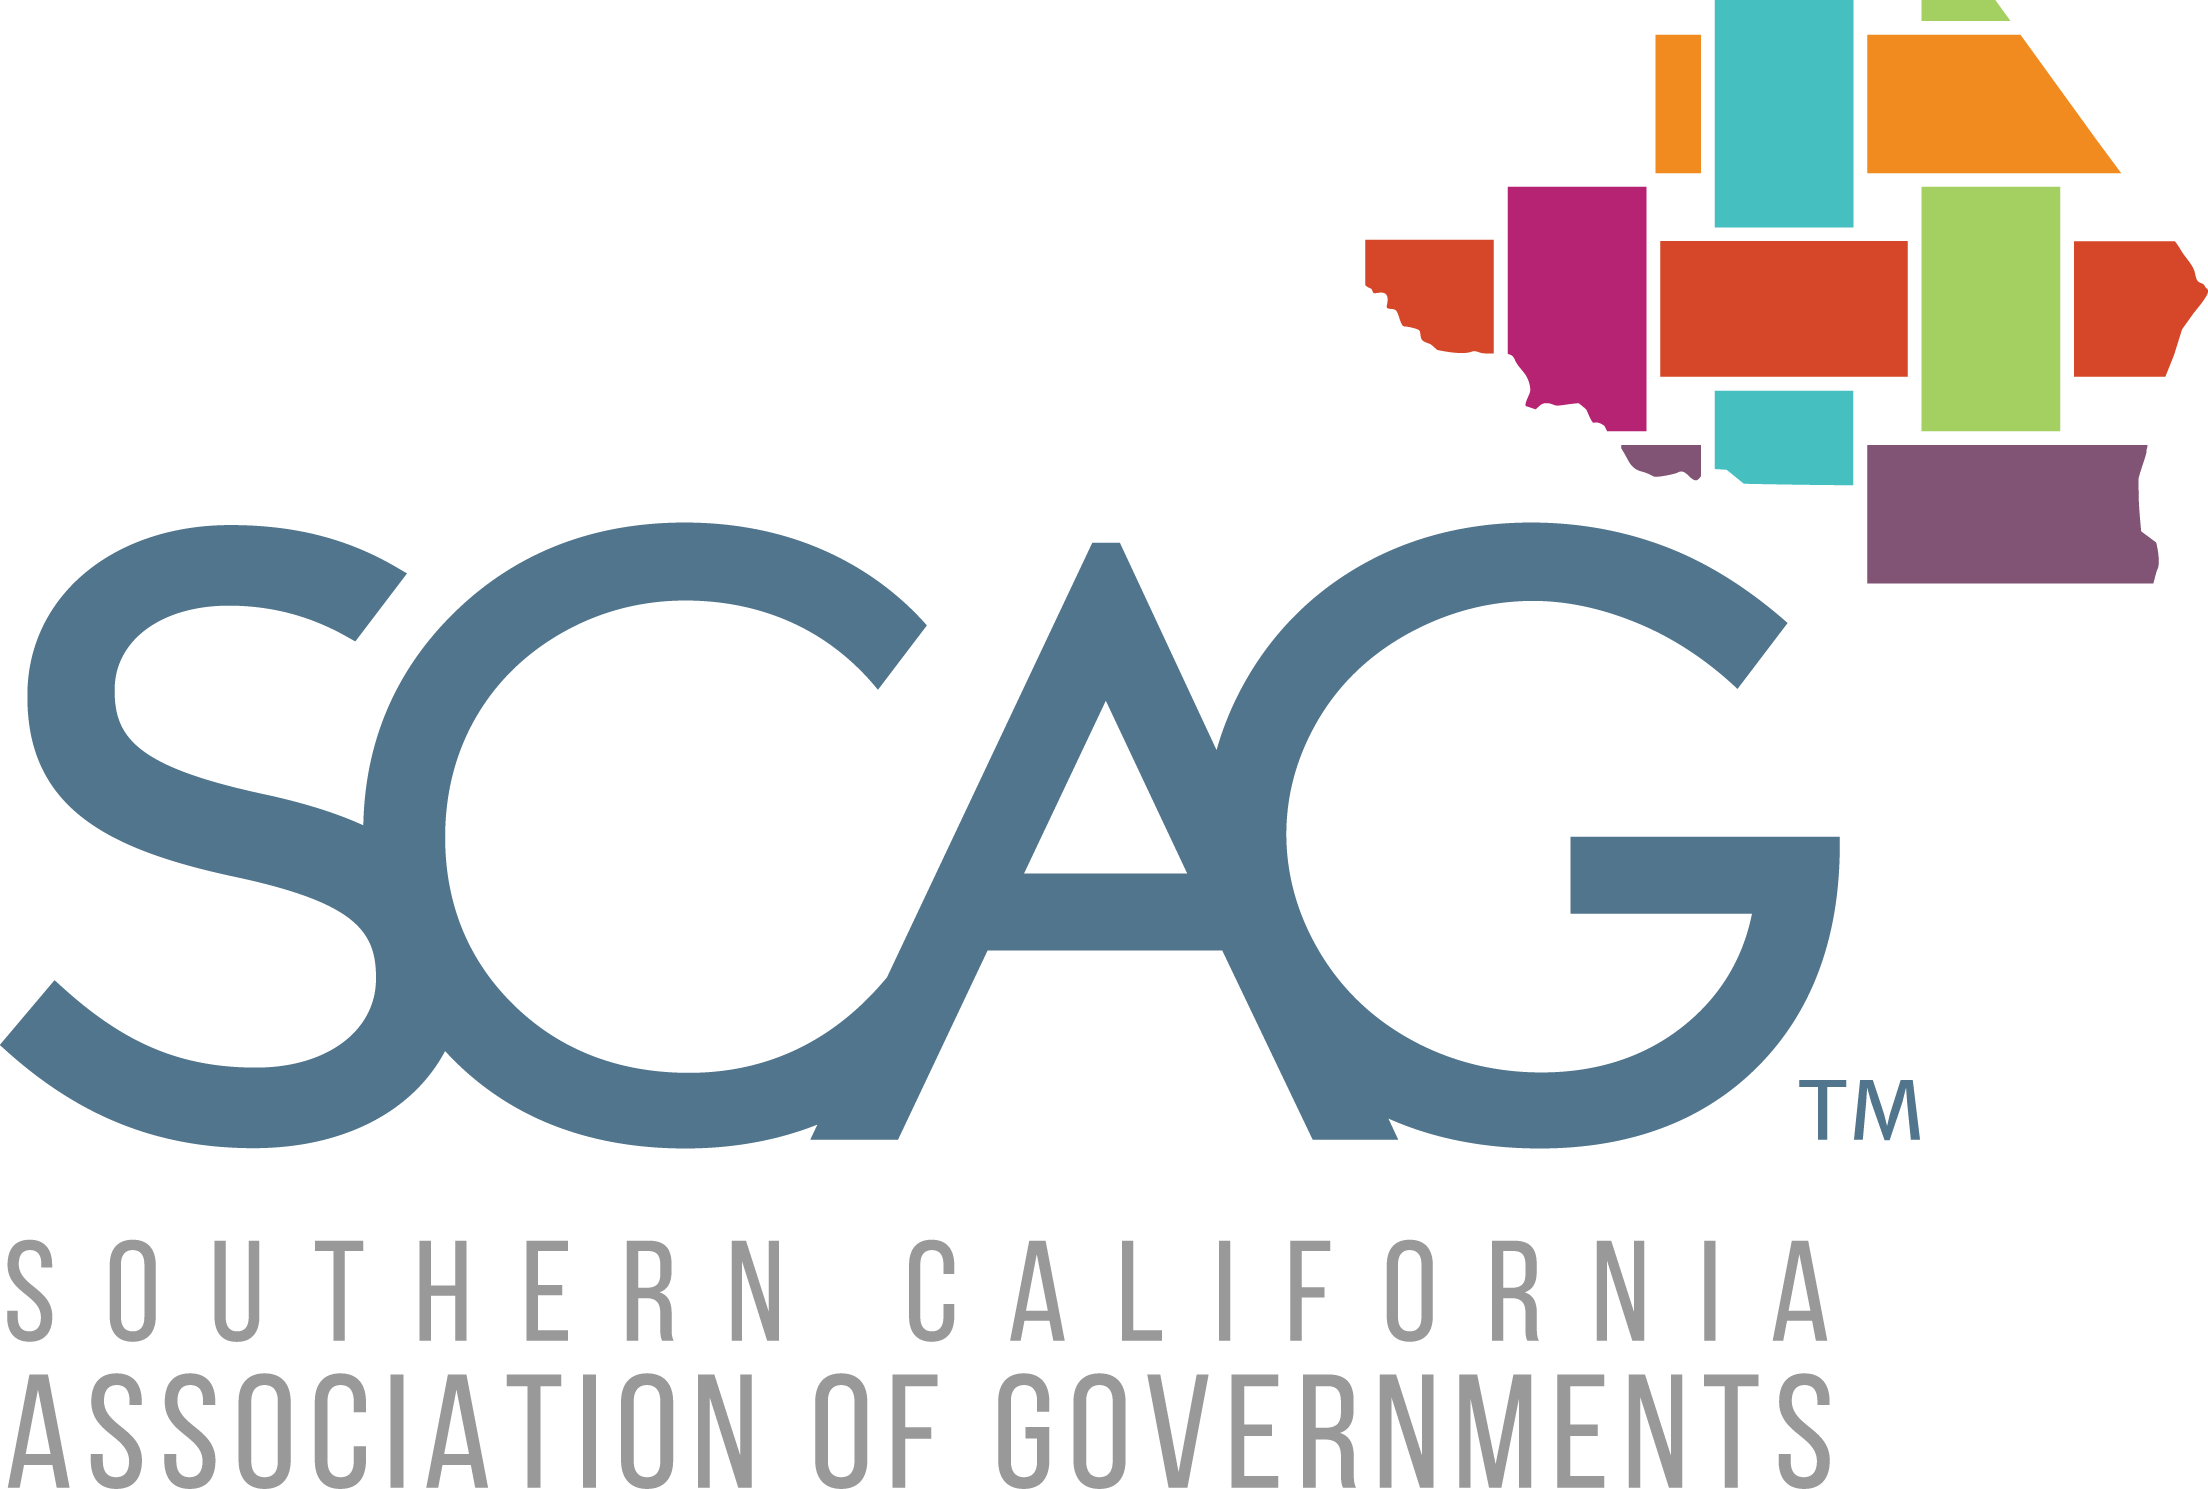 Southern California Association of Governments Logo